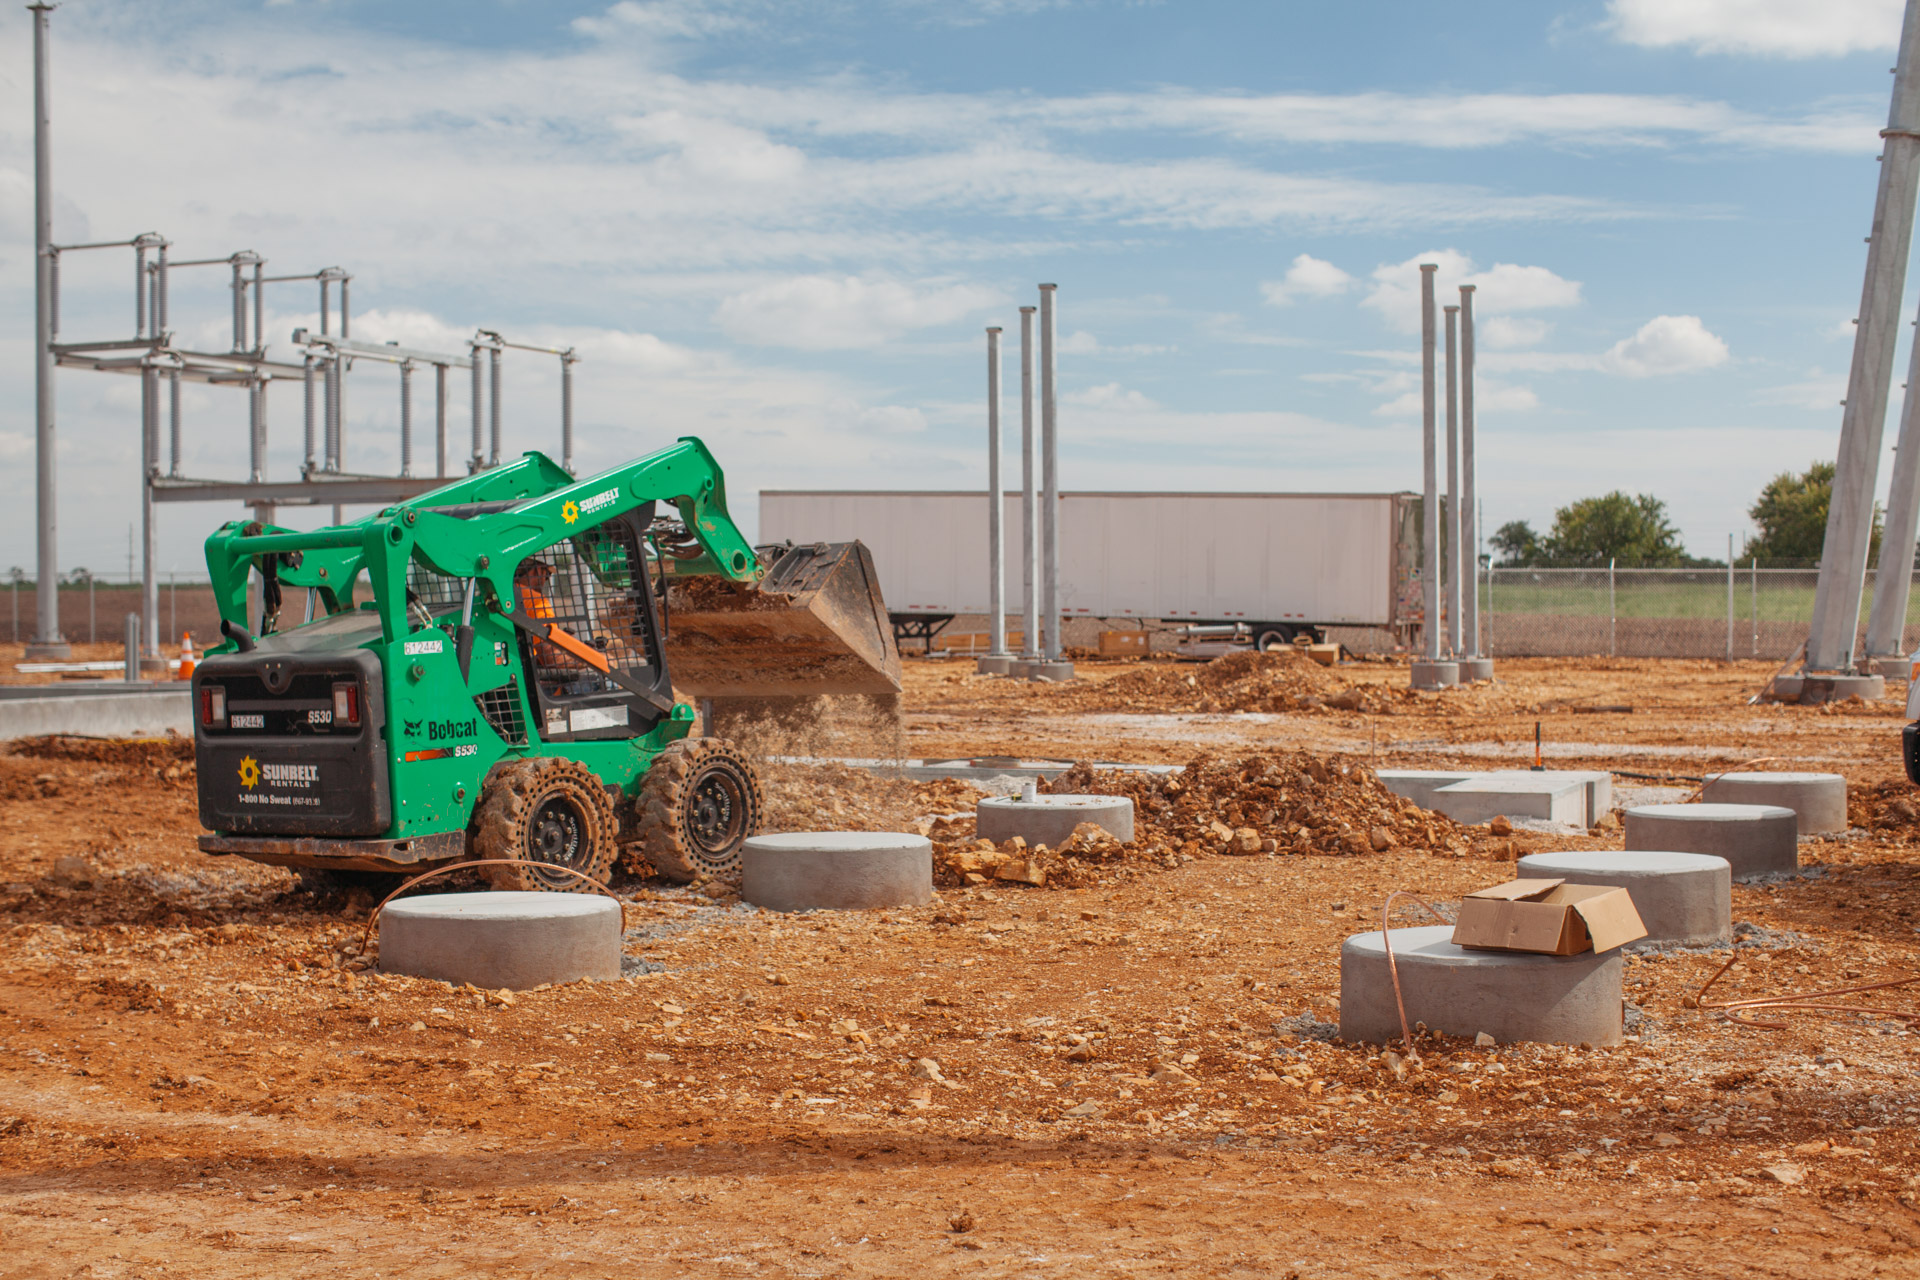 Image of small bulldozer dumping a load of dirt at the Empire Substation construction site in Joplin, MO.